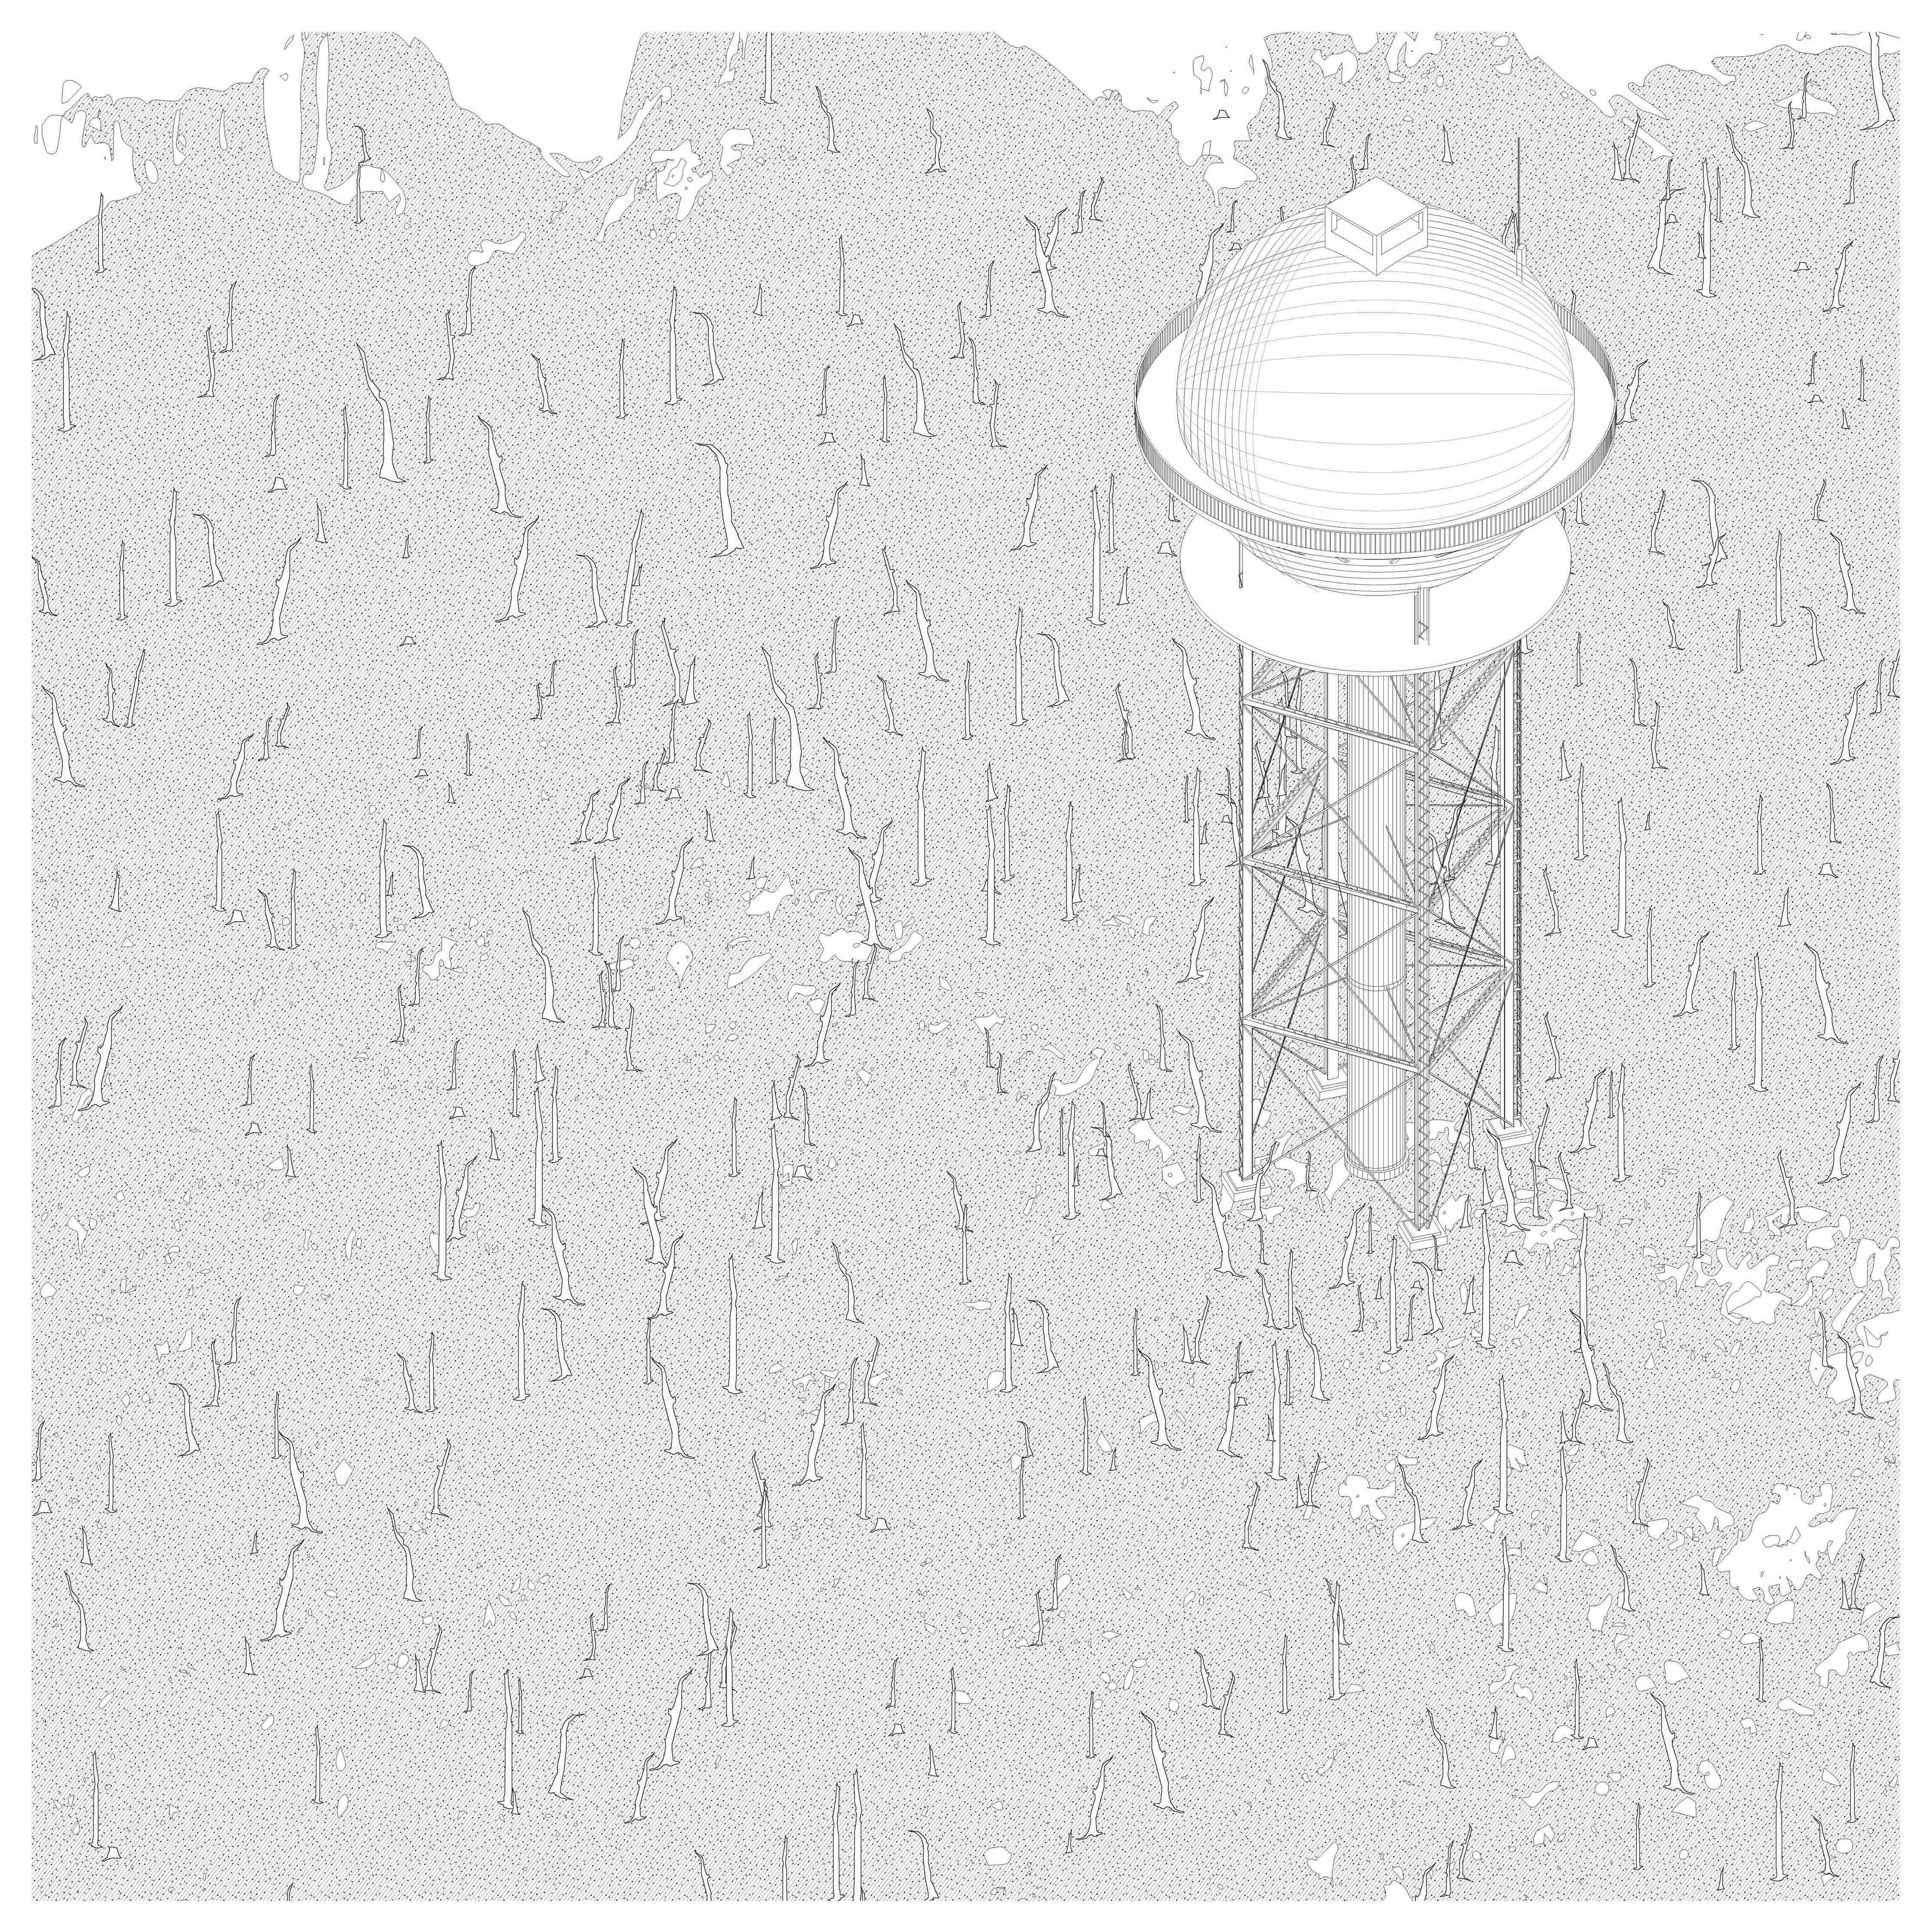 Concept Image - Dead Forest Tower